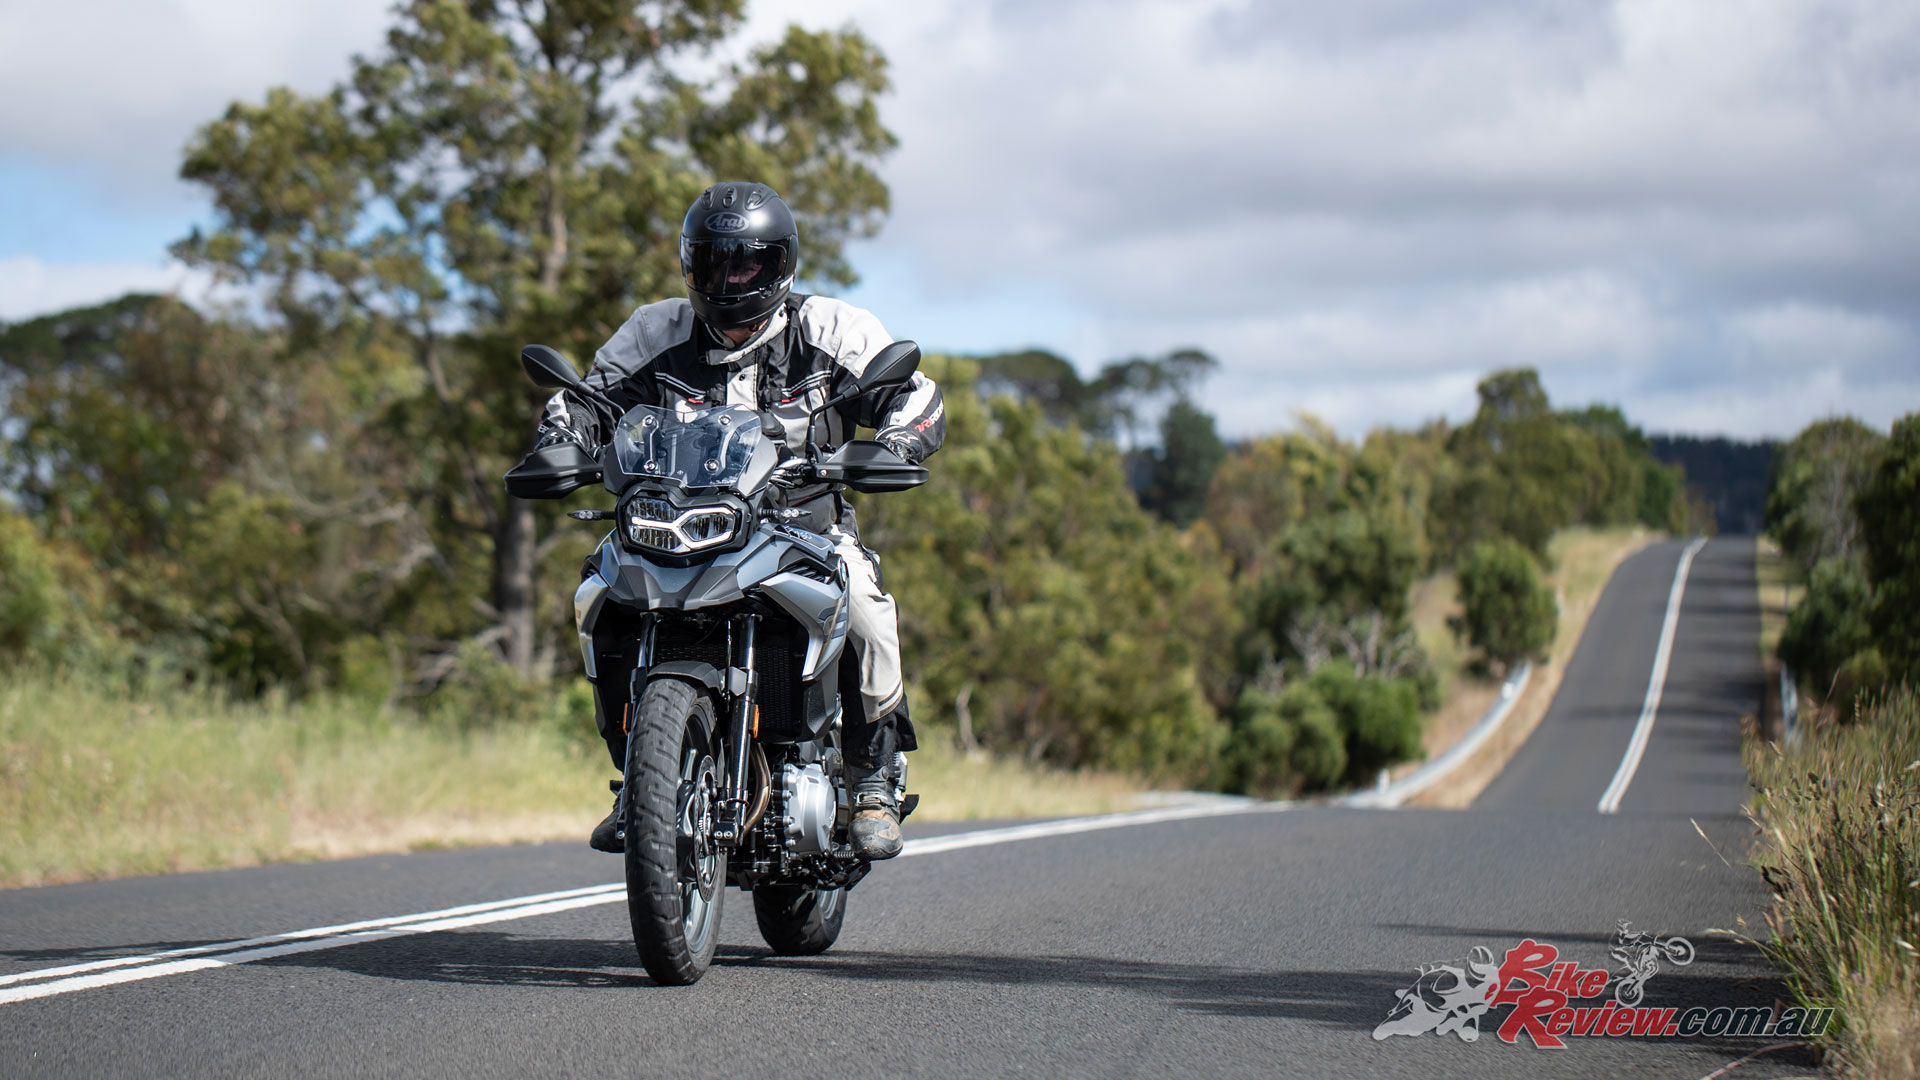 Overall the 2019 BMW F 750 GS offers an ideal step up from a LAMS machine, and is well suited to touring duties, especially for those of shorter stature, while still offering off-road capabilities